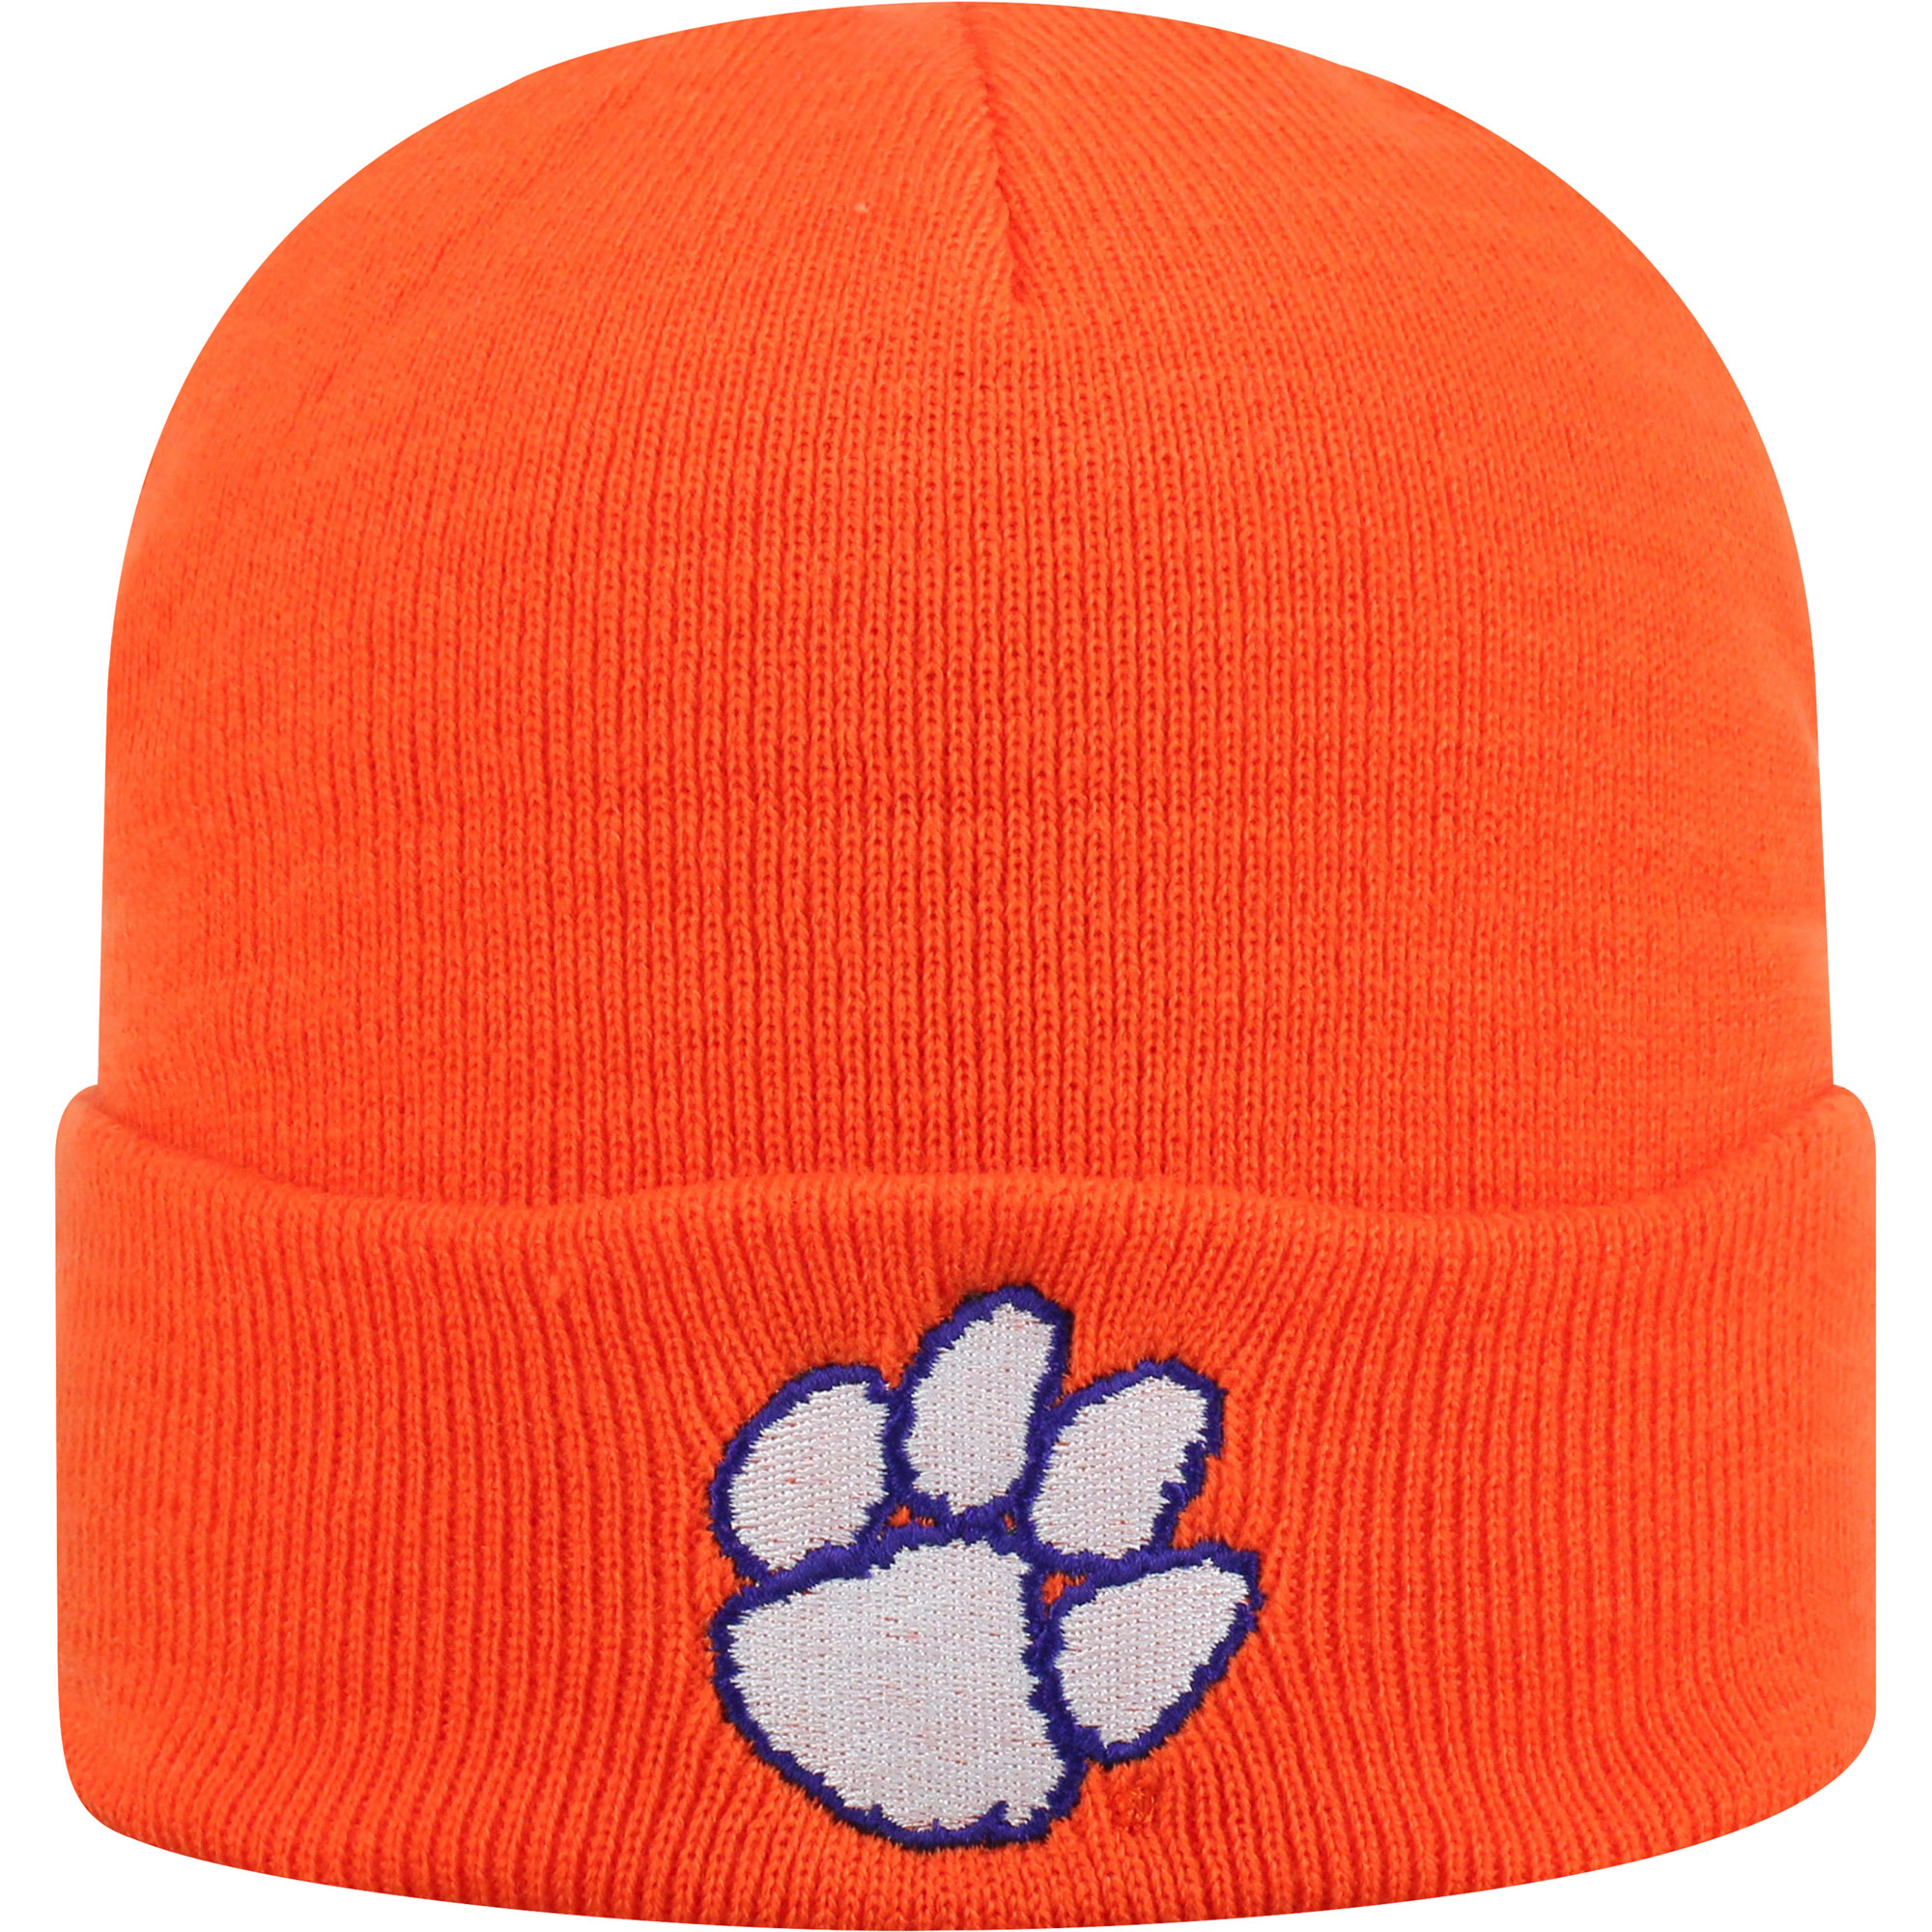 7fb7b9bc2896f0 ... pom osfa 834de bae62 uk mens russell orange clemson tigers team cuffed  knit hat osfa 5c973 d9de4 ...